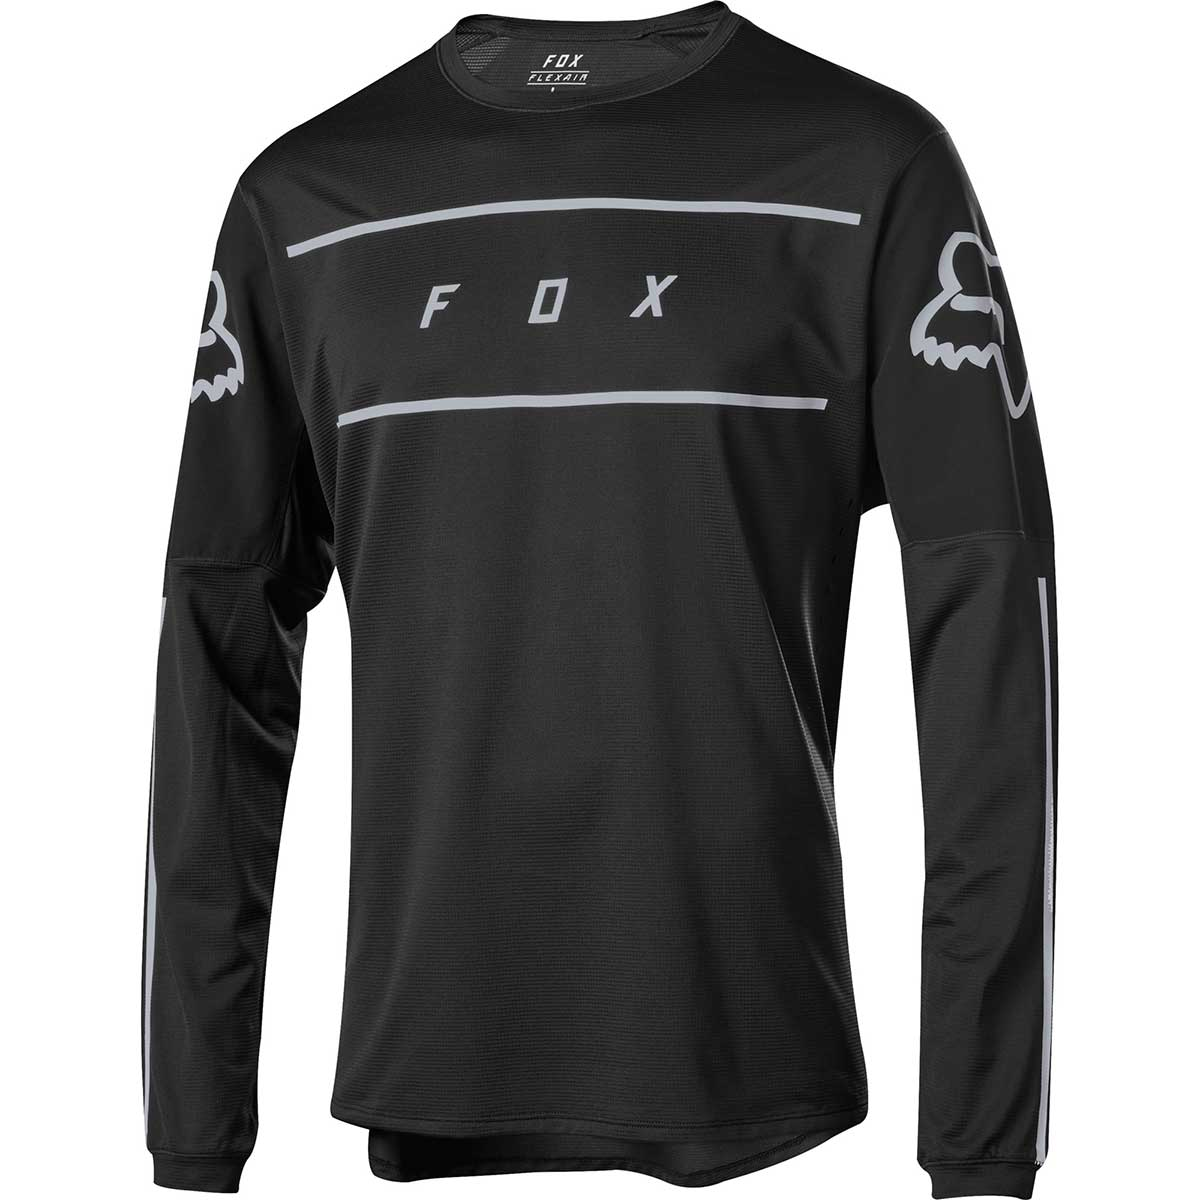 Fox men's Flexair Fine Line bike jersey in Black